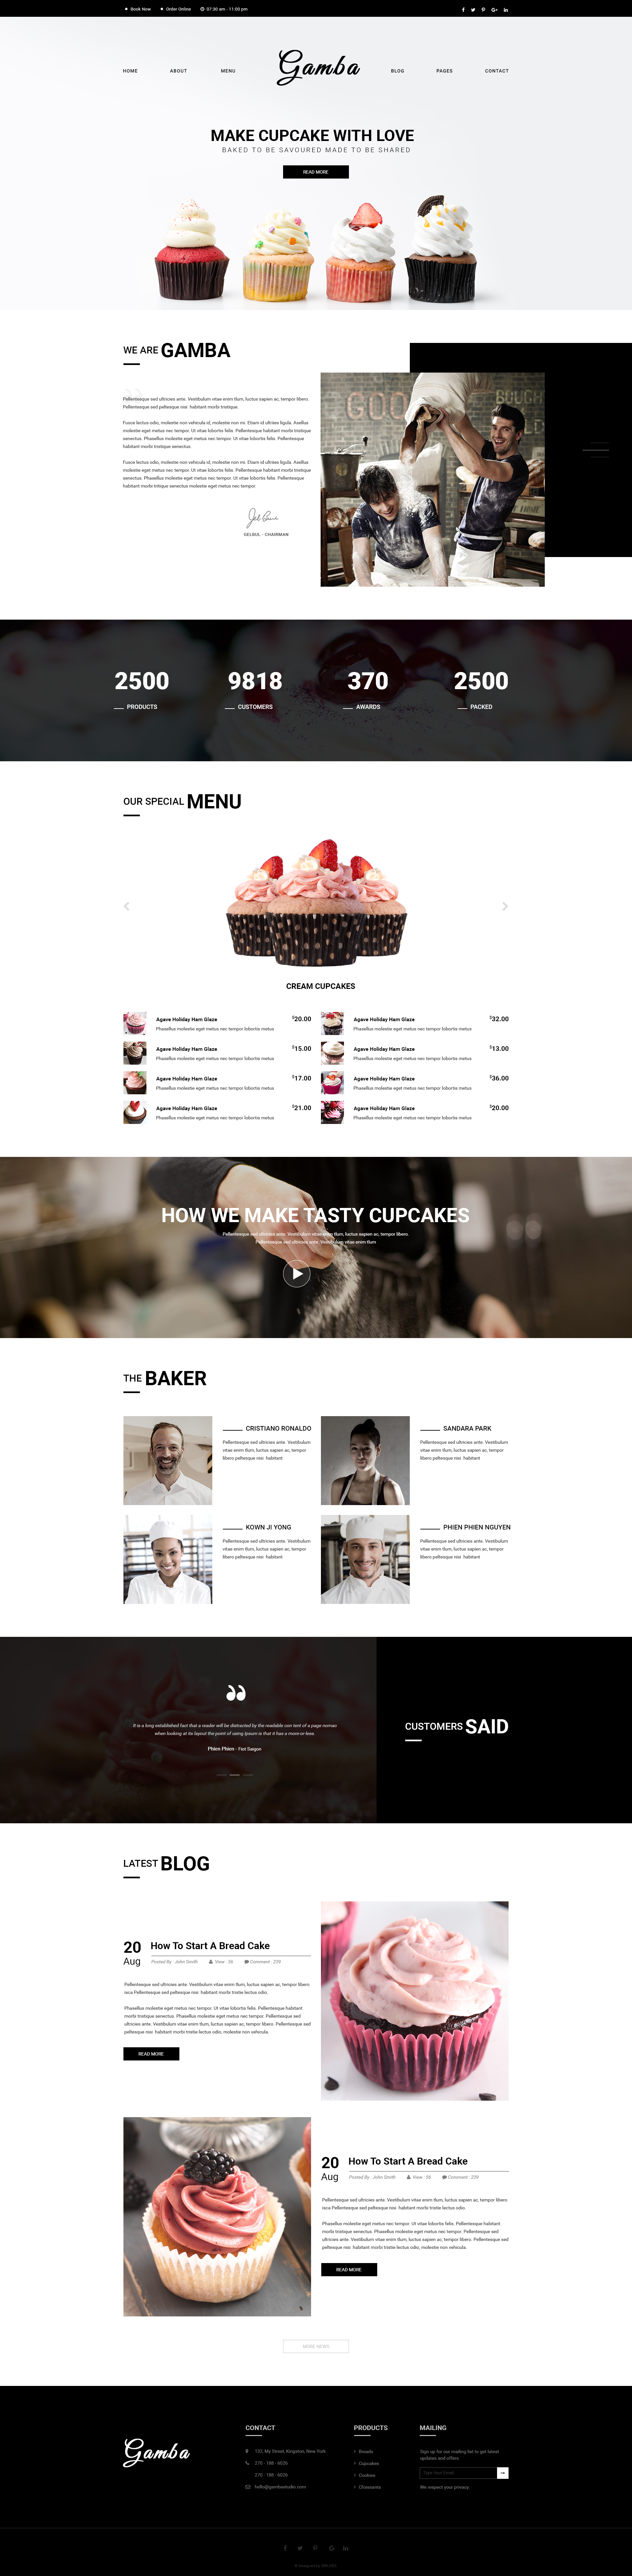 Gamba Bakery, Cakery, Pizza & Pastry Shop PSD Template by GambaThemes